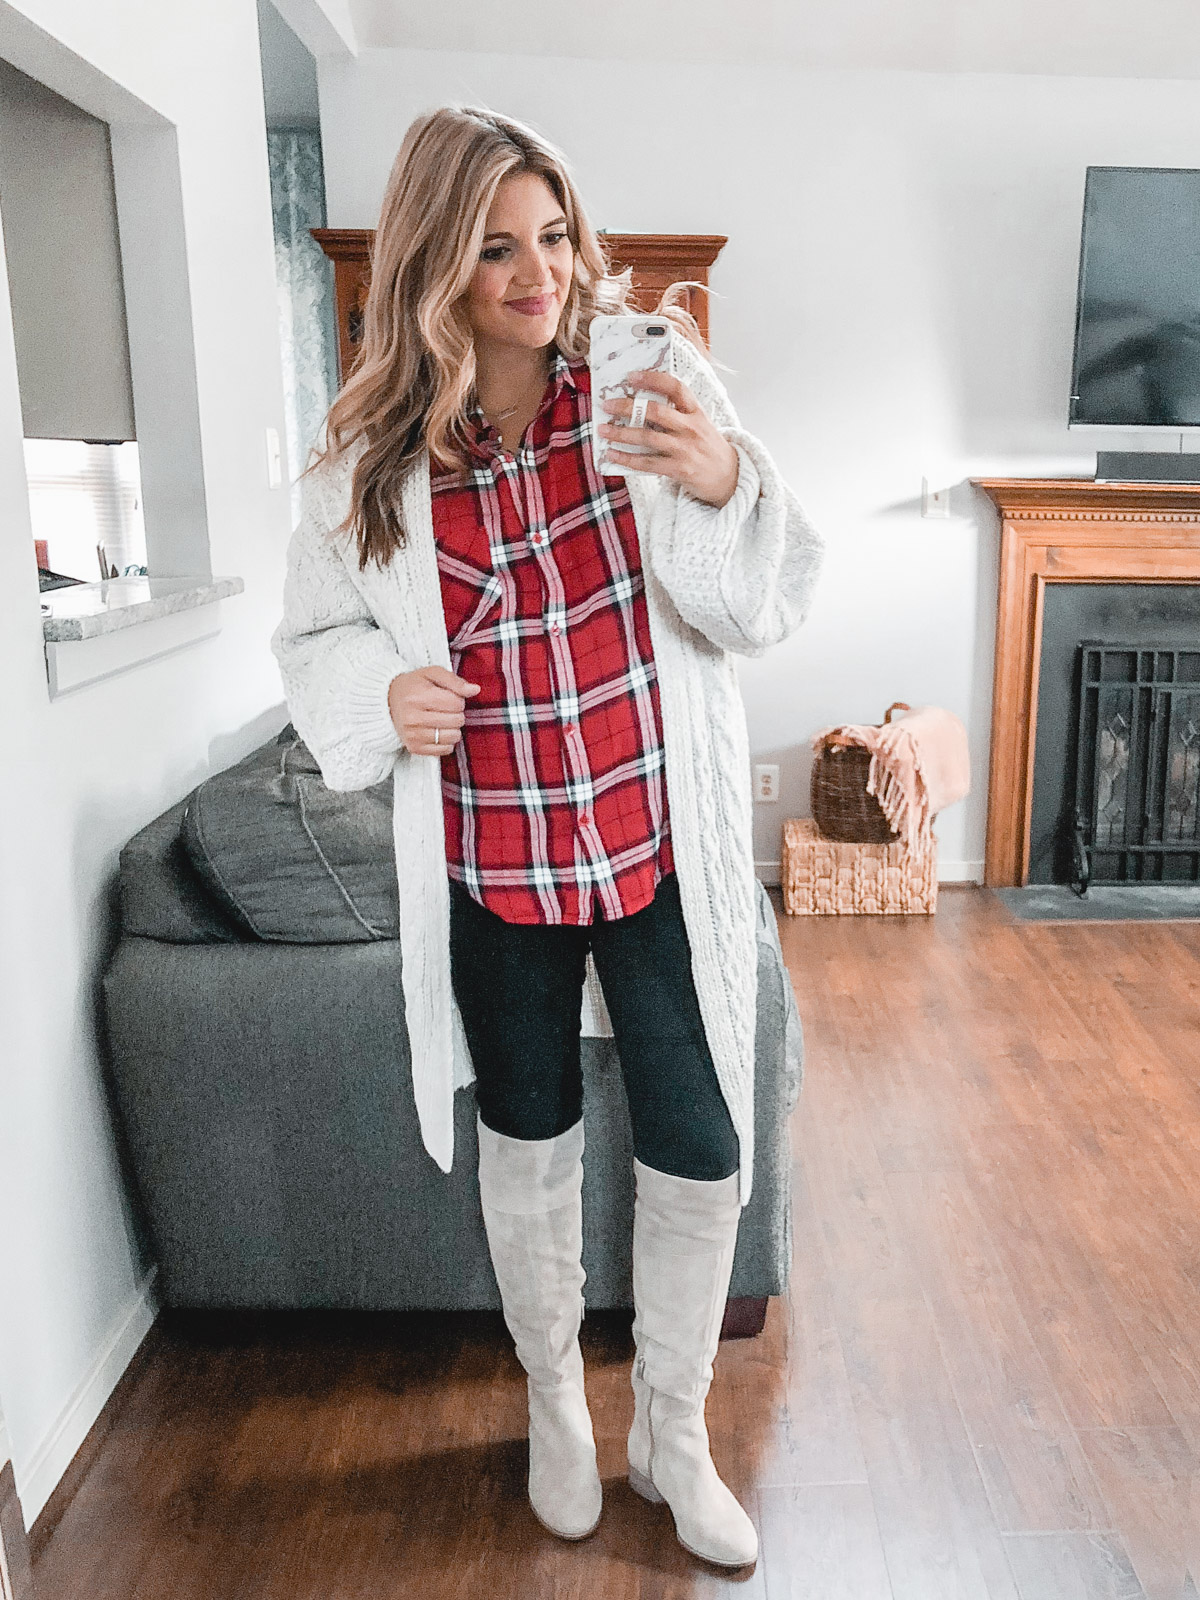 classic plaid outfits - Need plaid top outfit ideas? I'm sharing one $31 plaid top styled 15 different ways on bylaurenm.com!